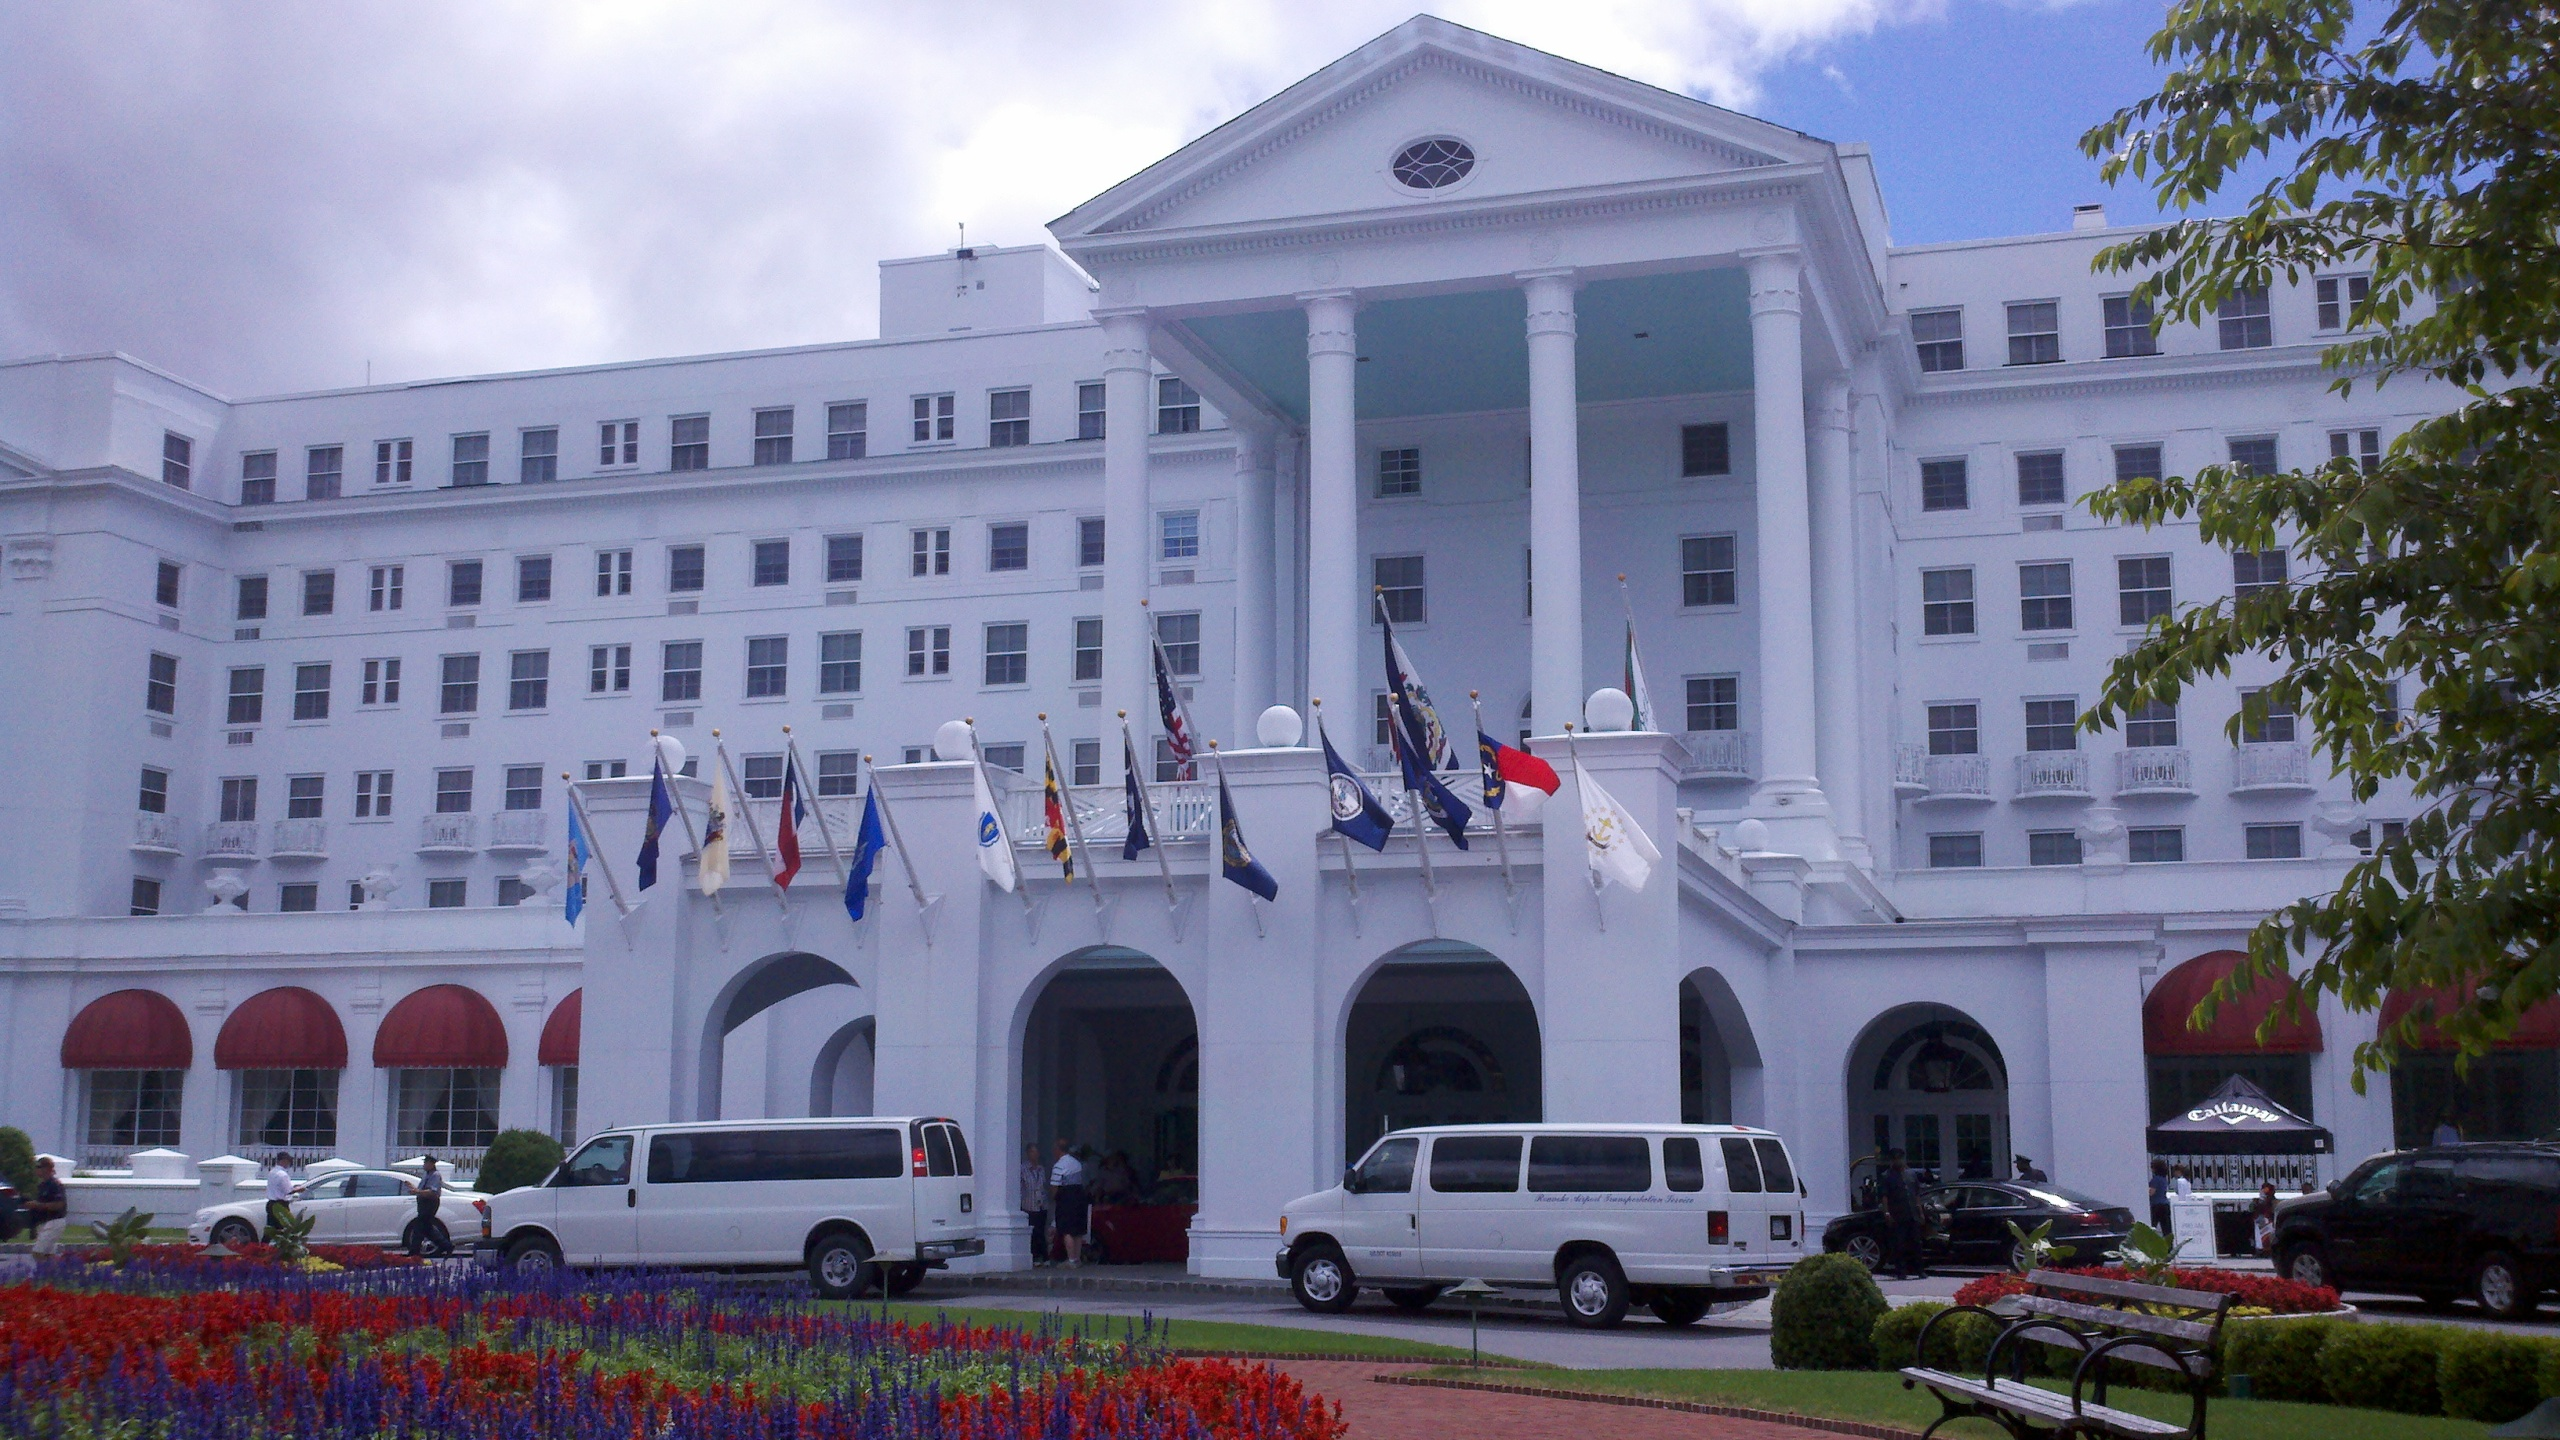 The Greenbrier Front Entrance_1548267156138.jpg-794306118.jpg